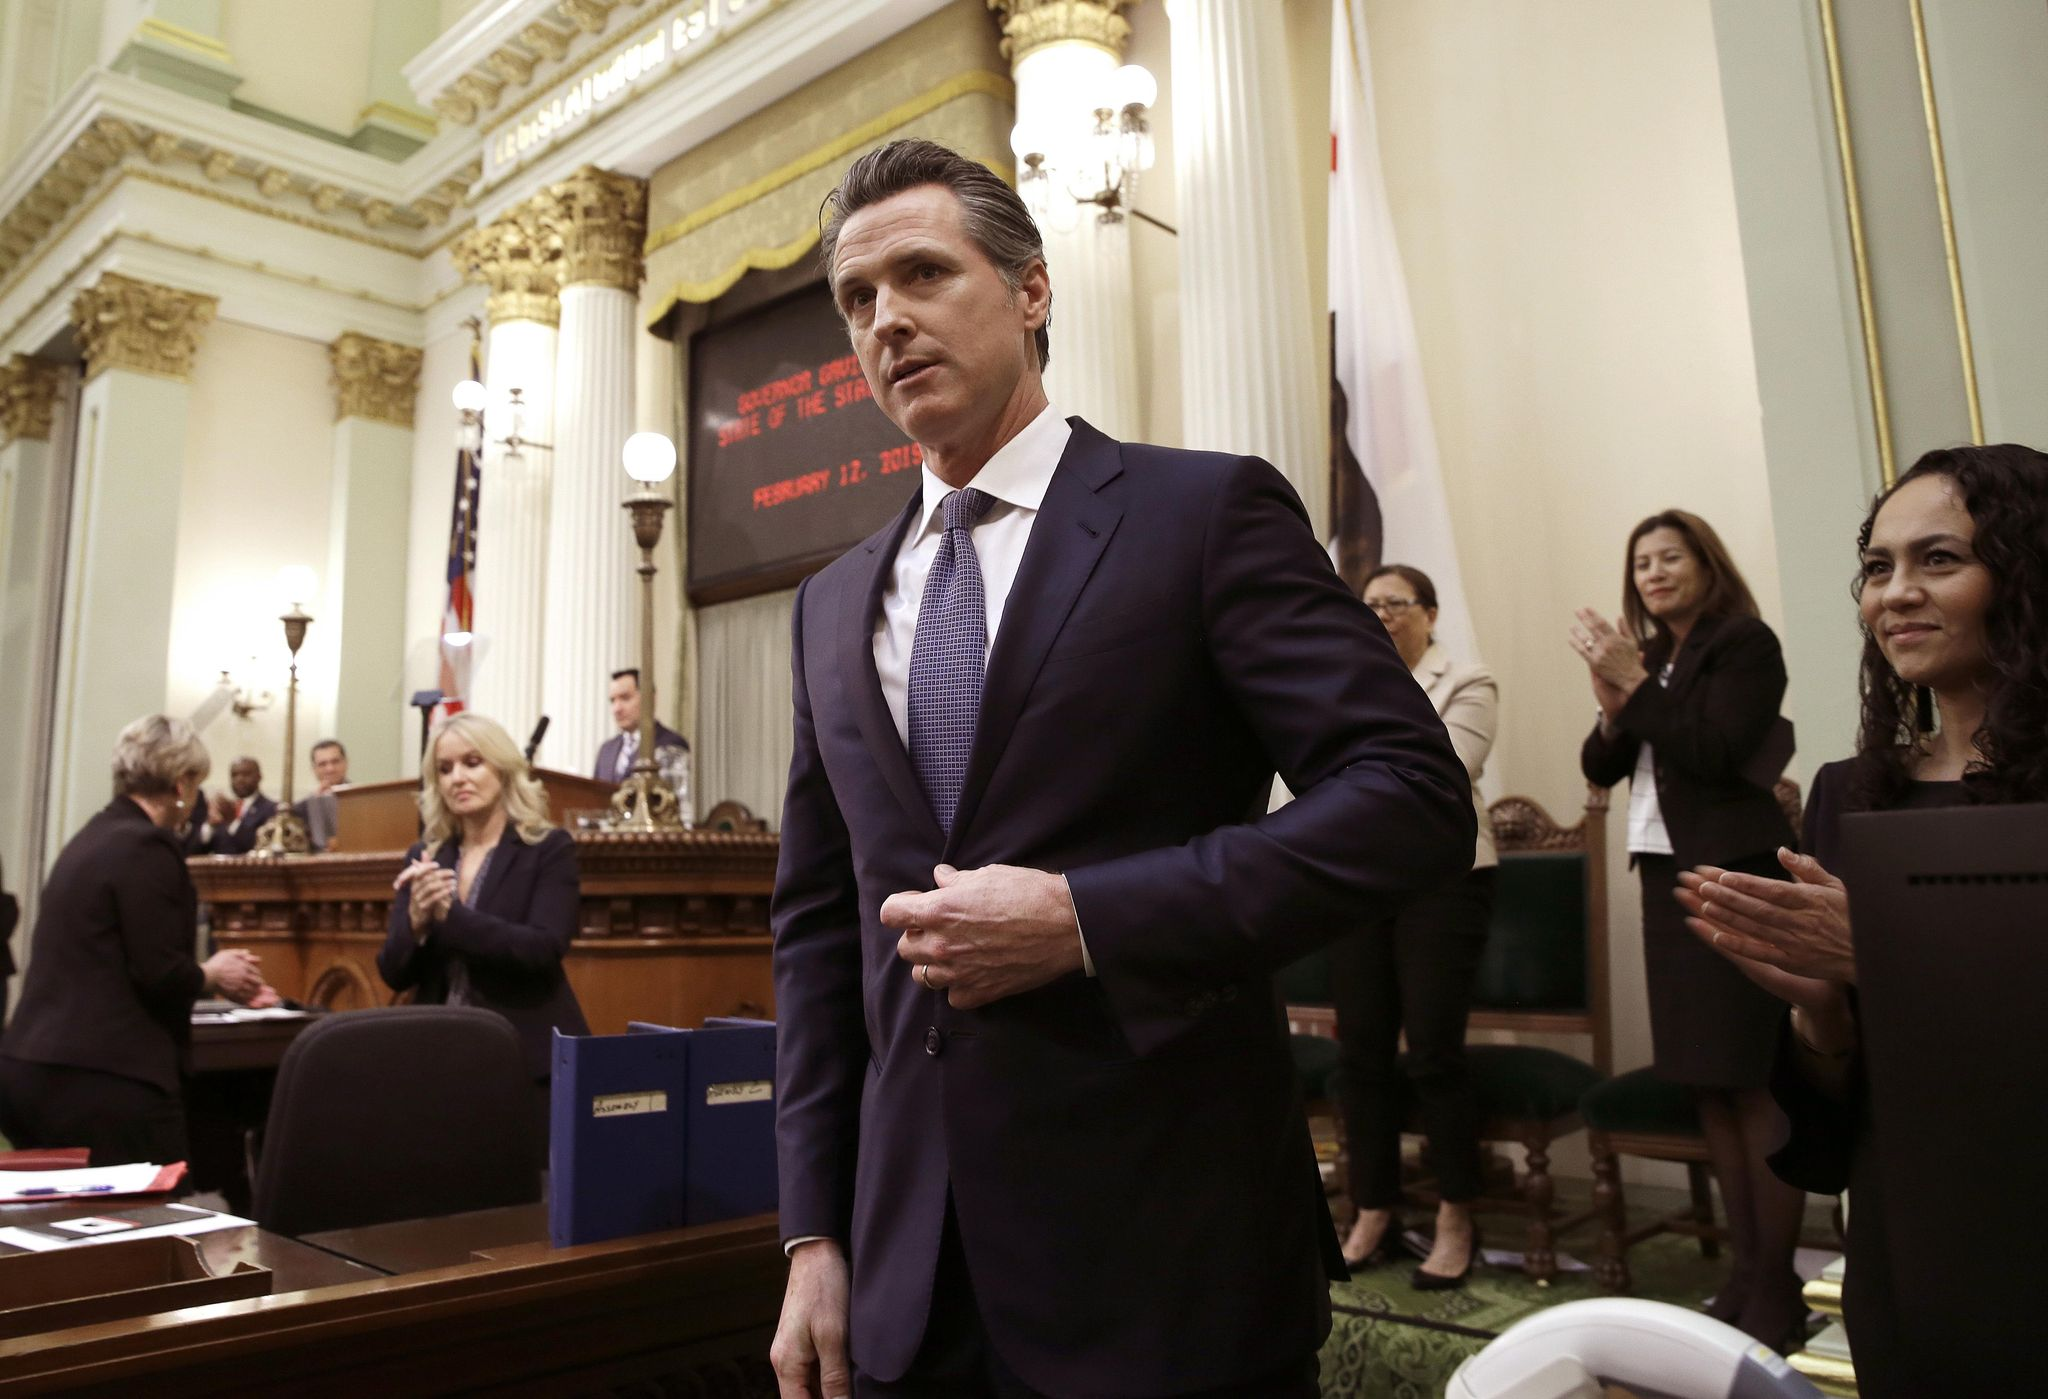 Gavin Newsom rejects Trump demand to return 'wasted' $3.5 billion: 'We're not giving it back'